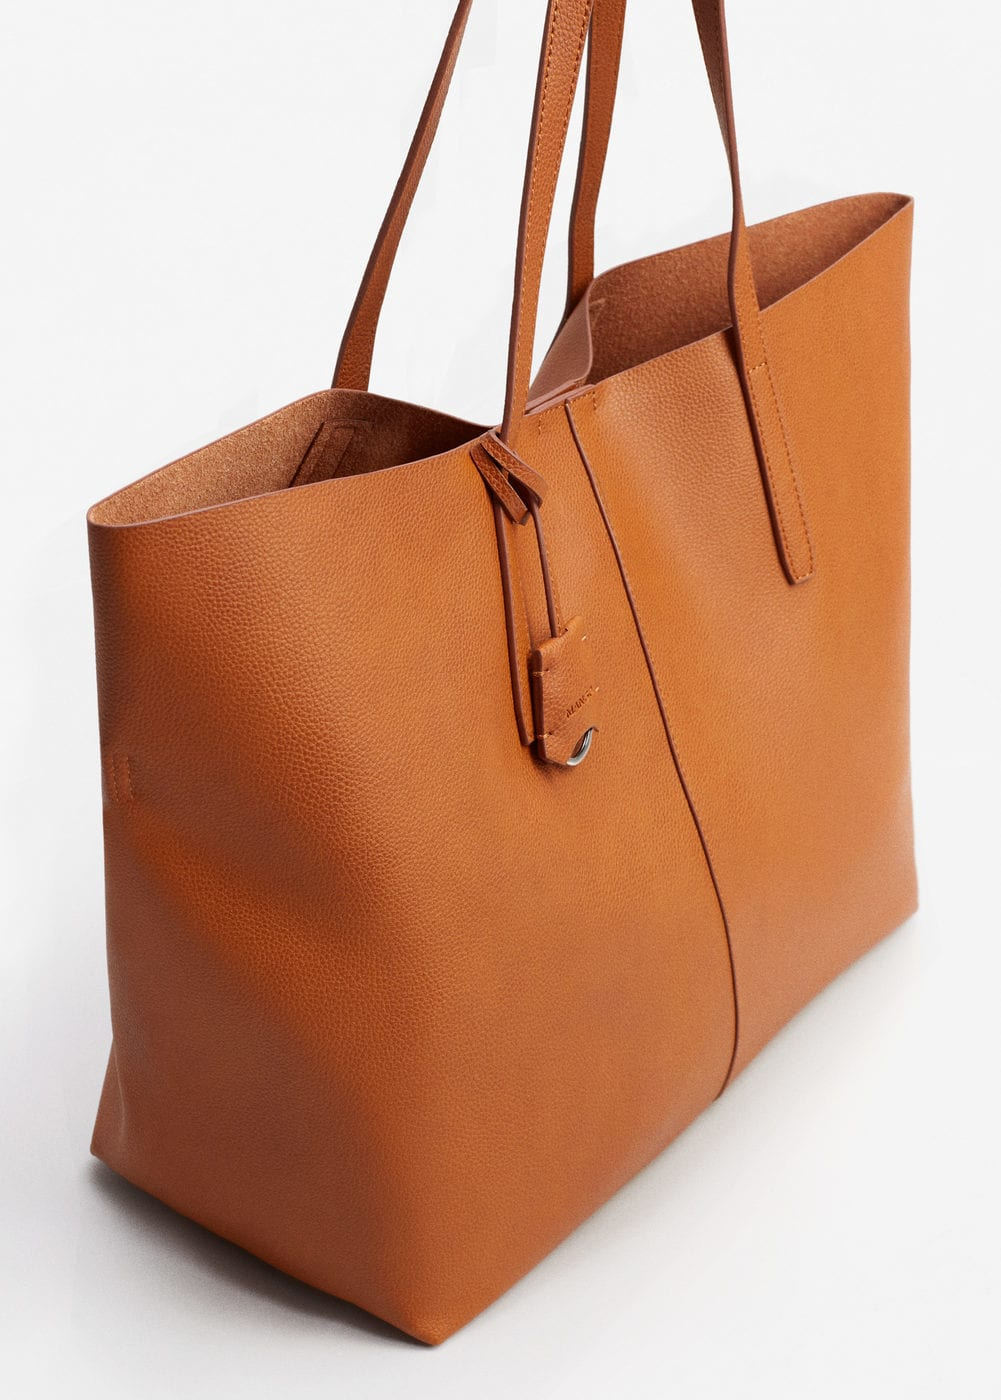 Mango tote—in search of the perfect travel bag